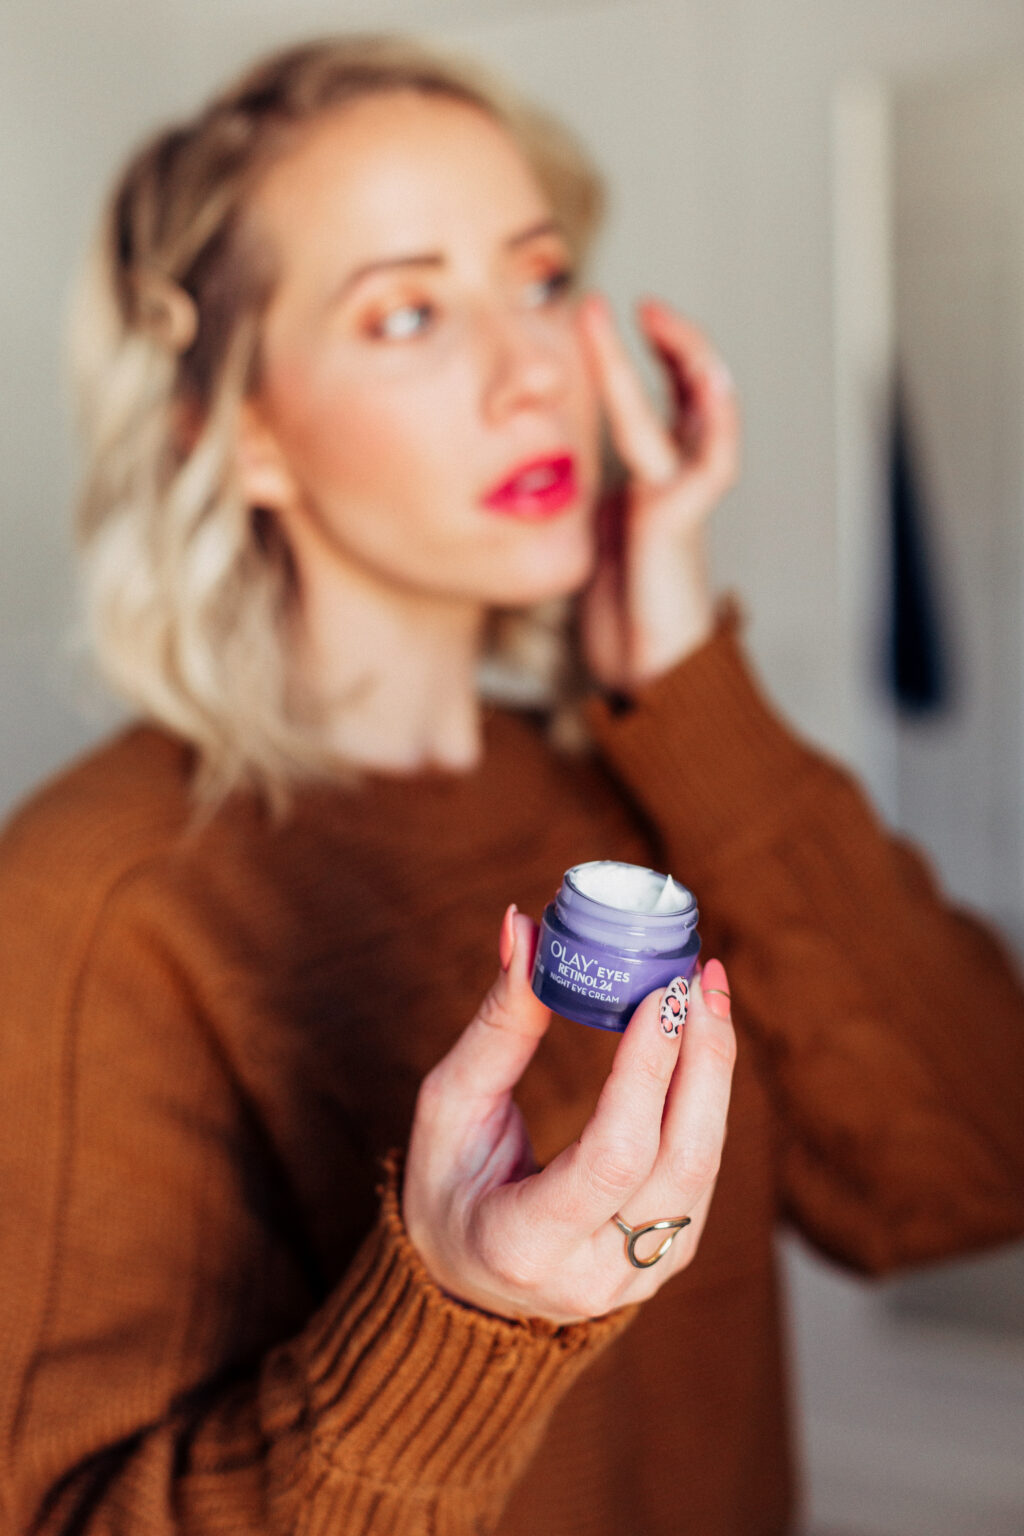 How does retinol work and what can retinol help? Find out all the details for why you need retinol in your skincare routine.